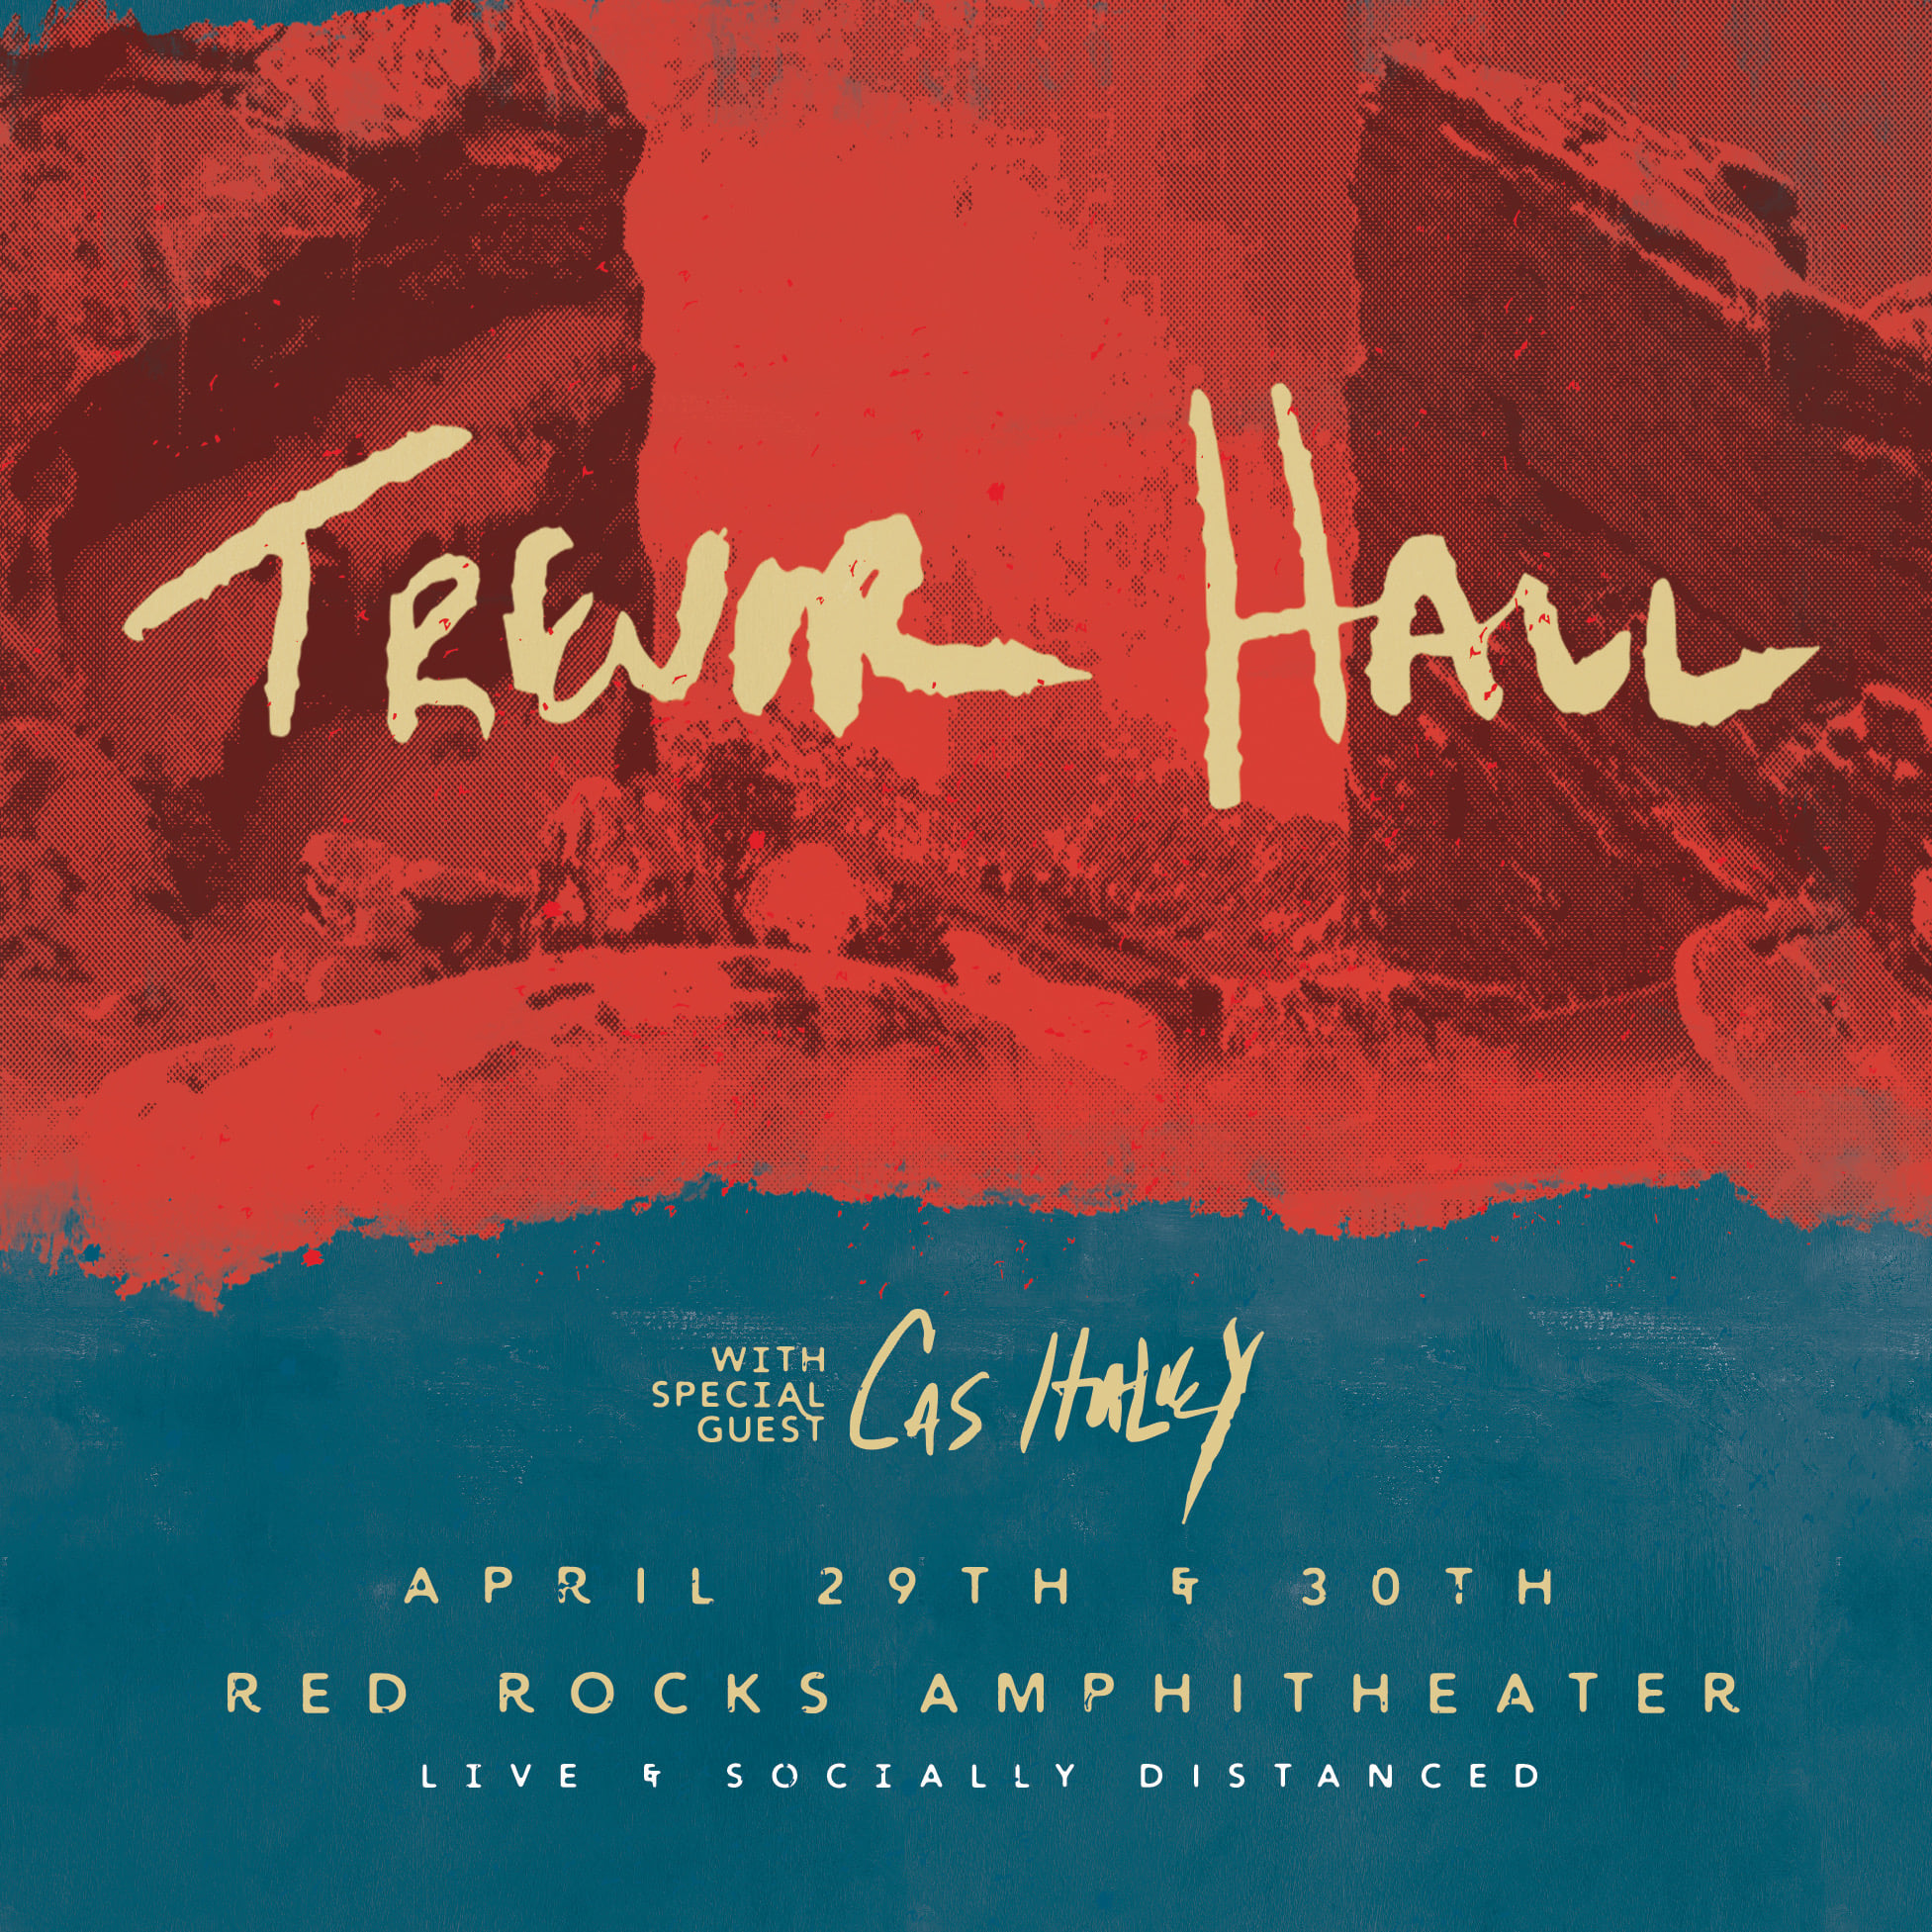 Trevor Hall April 29 and 30Th Red Rocks Ampitheater